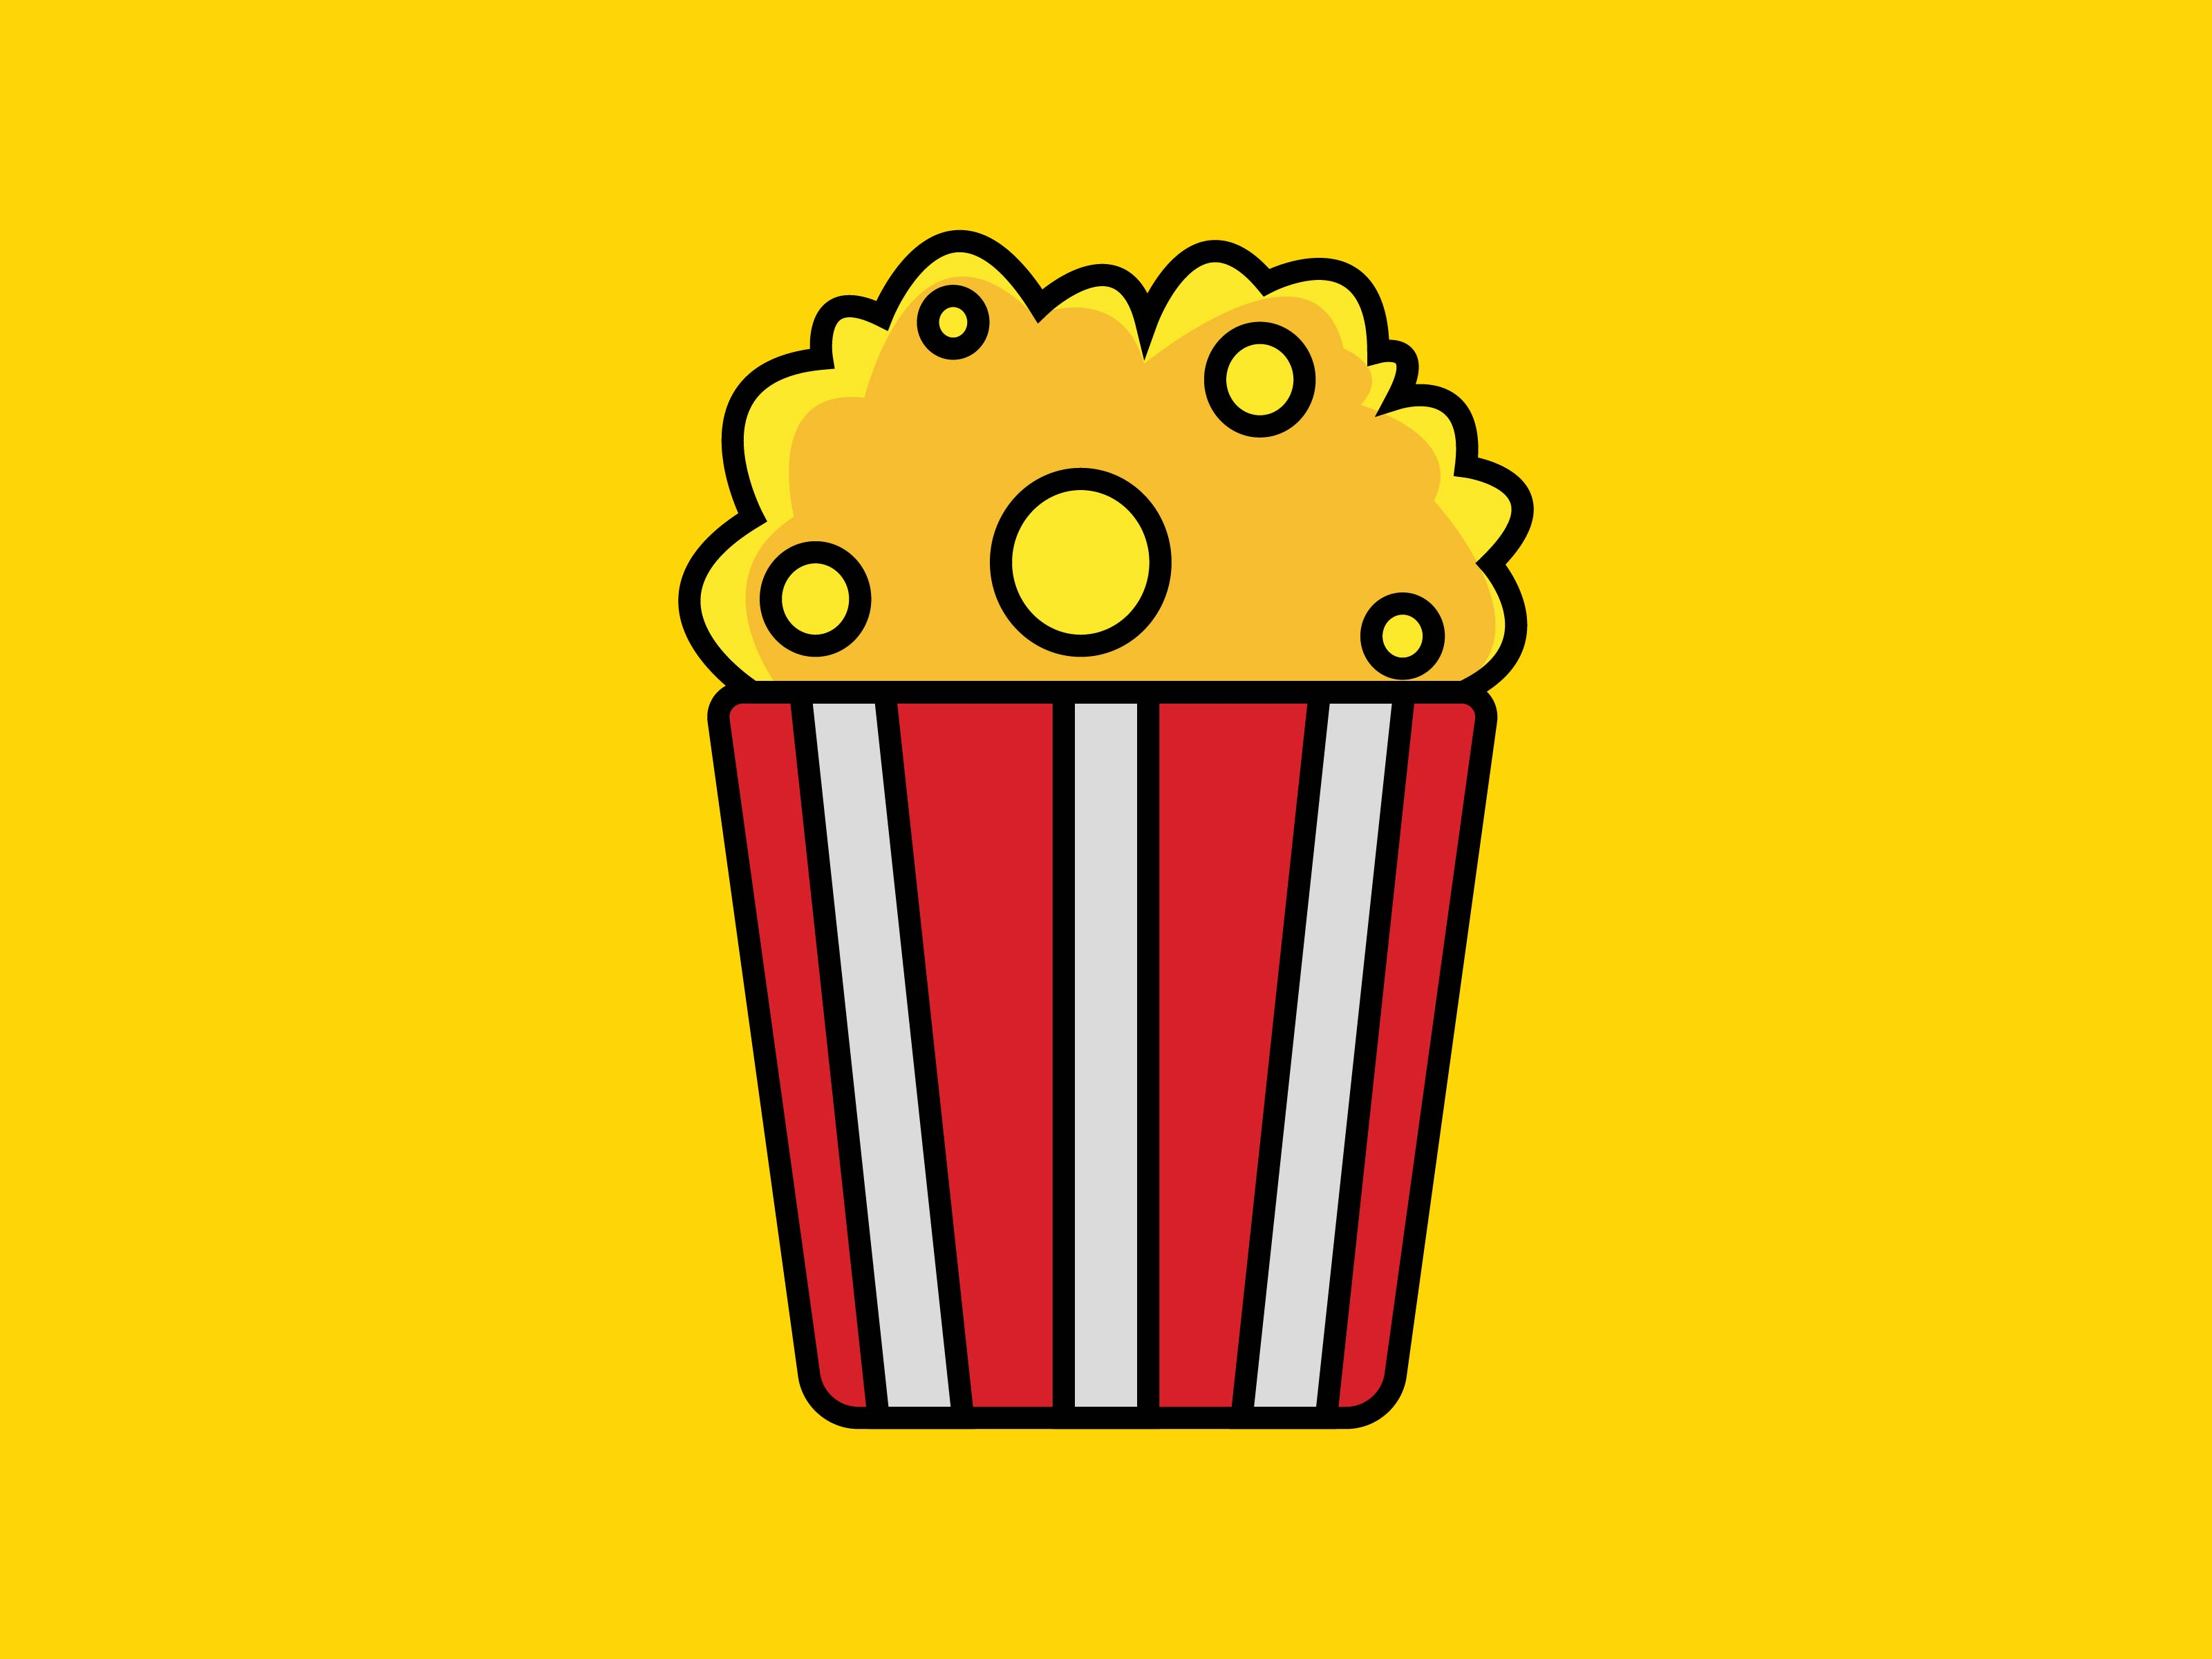 Download Free Popcorn Icon Graphic By Meandmydate Creative Fabrica for Cricut Explore, Silhouette and other cutting machines.